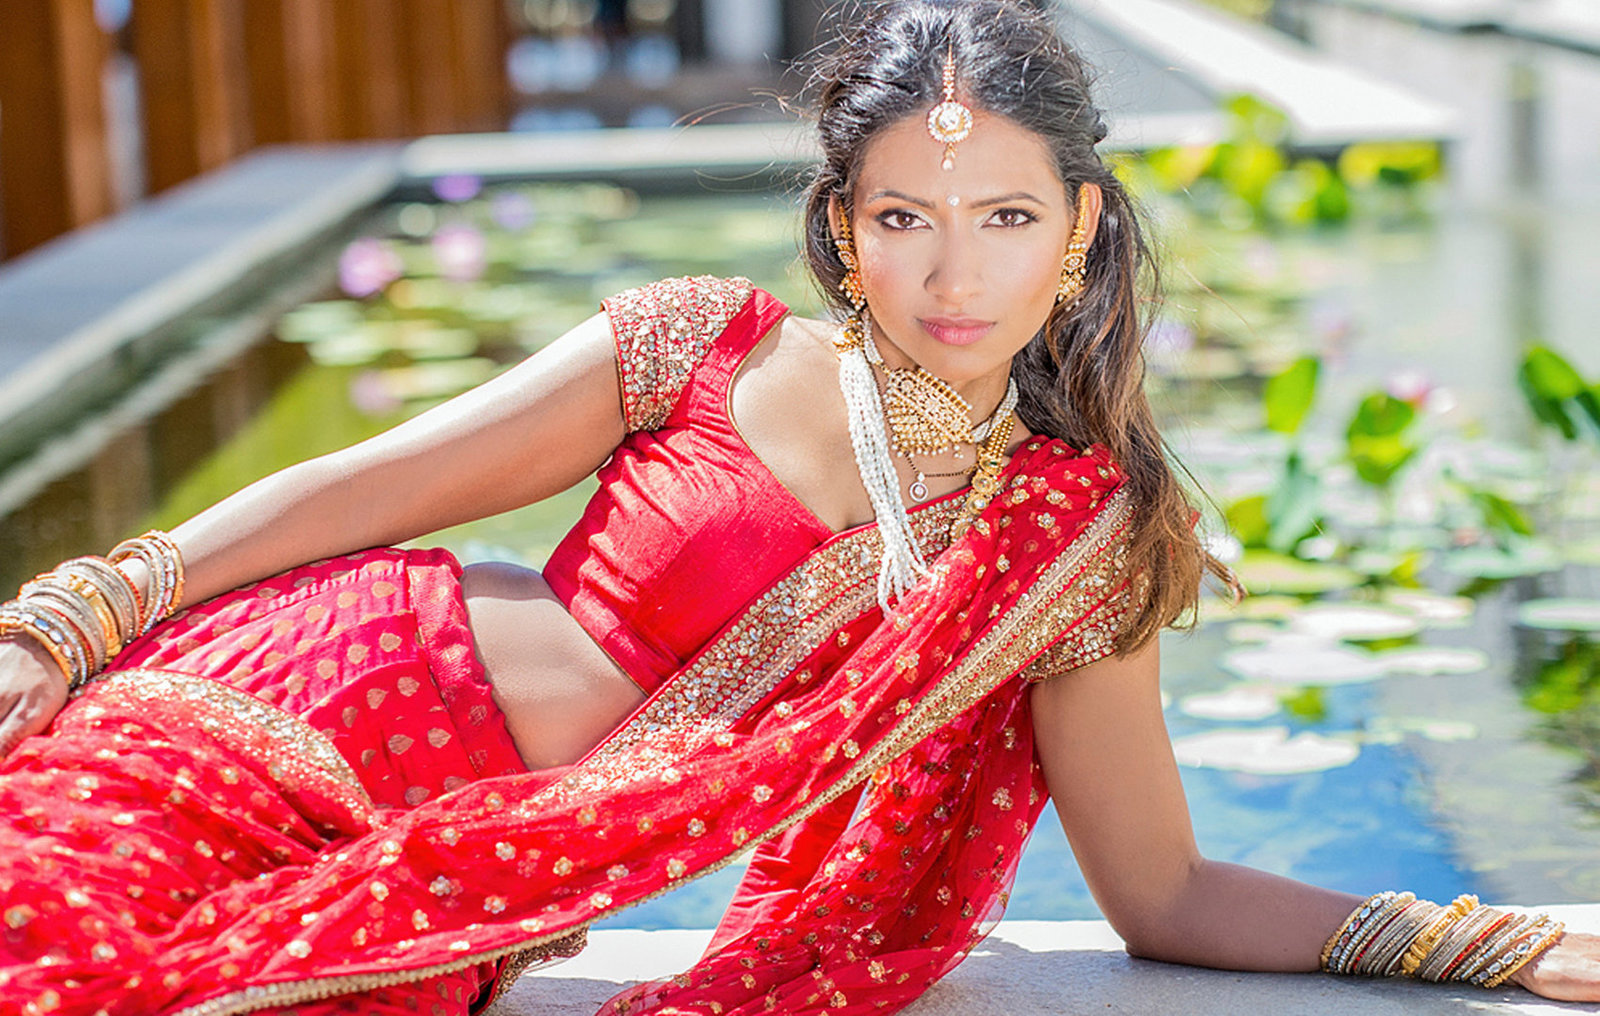 Indian Wedding Photographers in Hawaii | Maui Weddings | Kauai Weddings | Oahu Weddings | Big Island Weddings